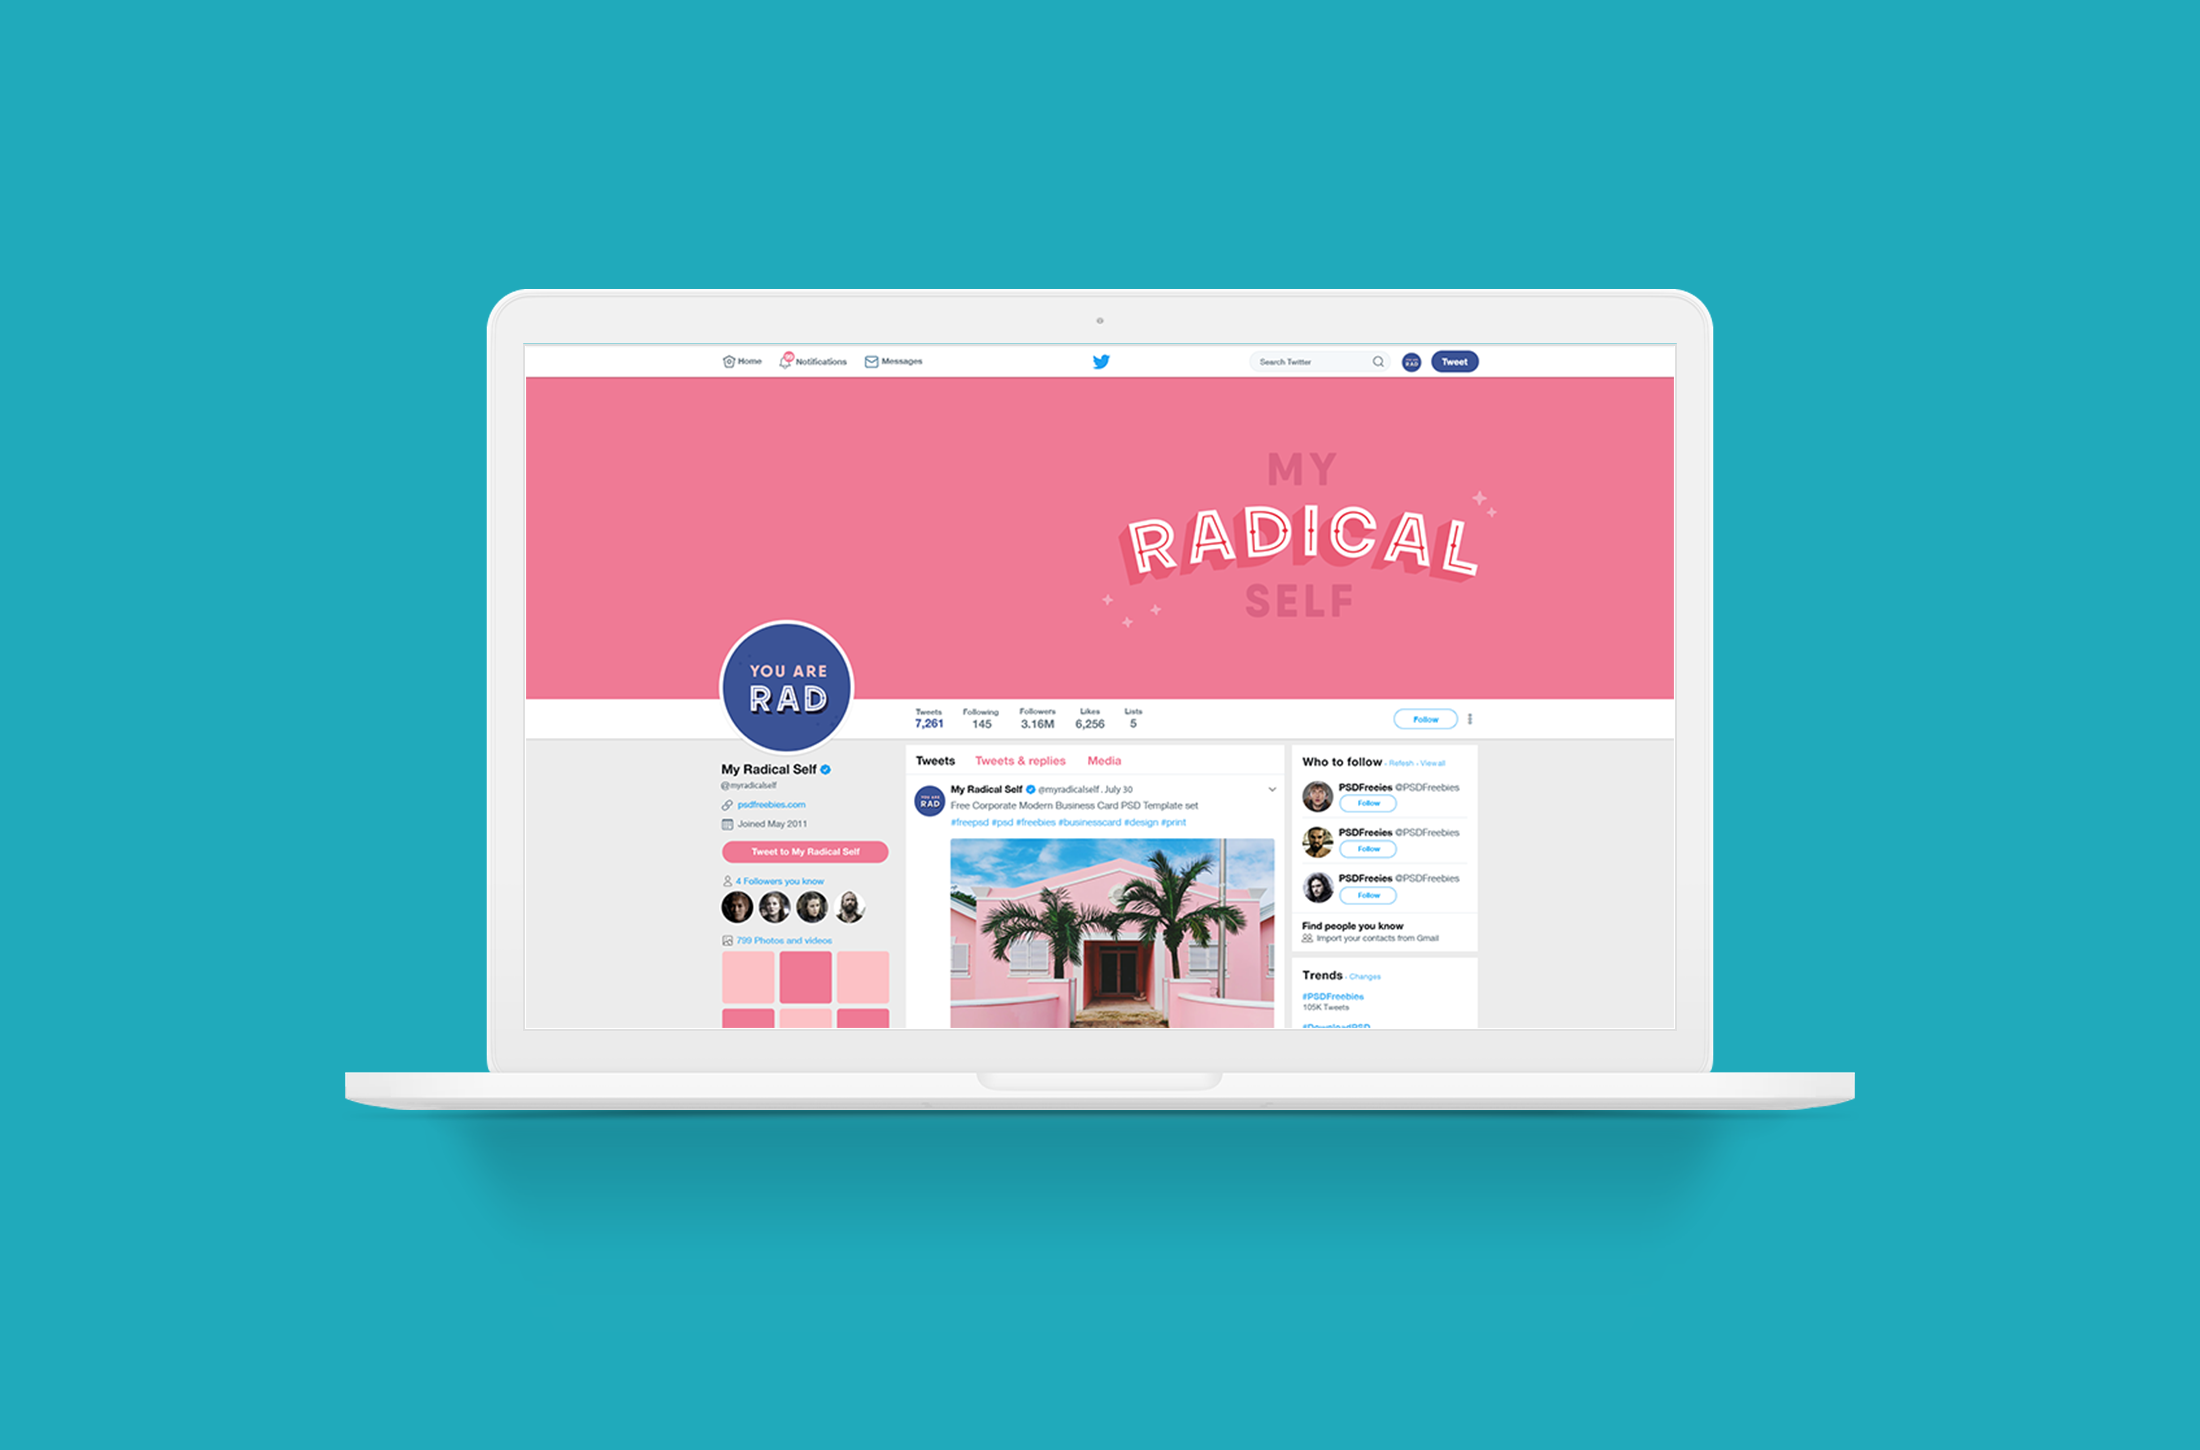 Social media Twitter mockup for My Radical Self, an online community and blog for women focusing on self-love, feminism and mindfulness - designed by Wiltshire-based graphic designer, Kaye Huett